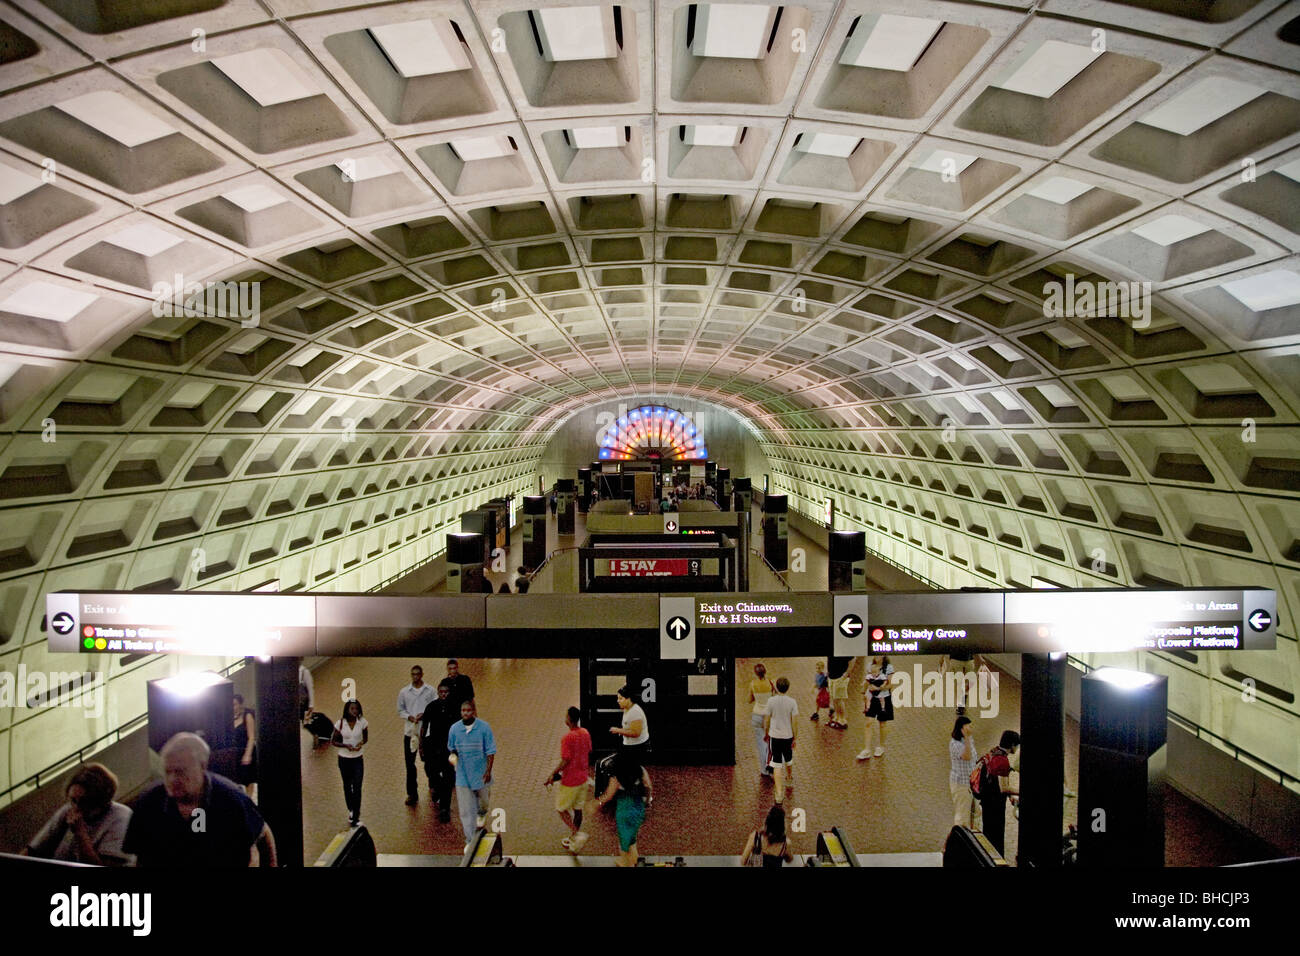 interior overhead view of metro train station in washington d c stock photo royalty free image. Black Bedroom Furniture Sets. Home Design Ideas